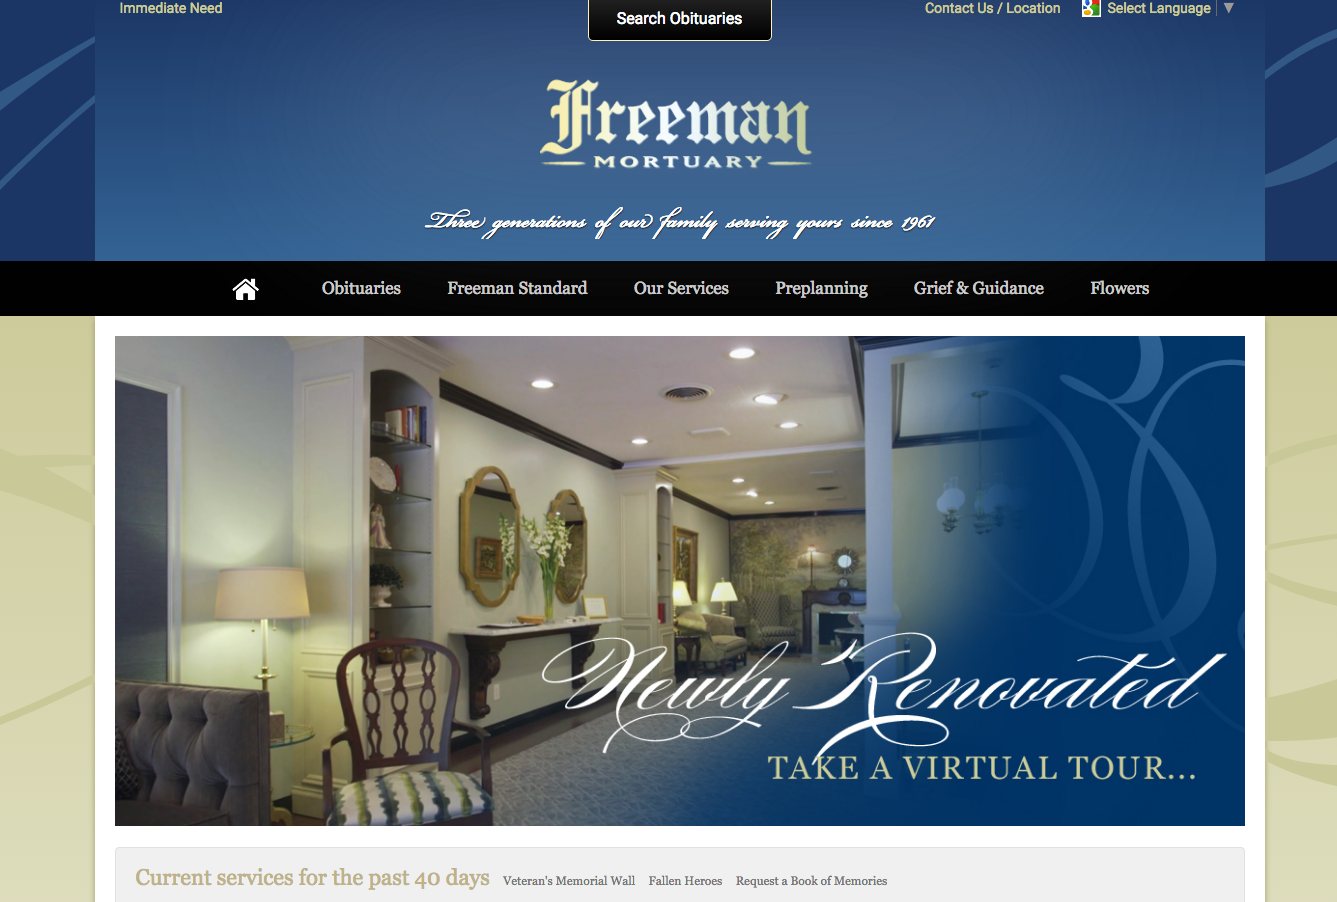 20 funeral home website designs that stood out in 2016 - Funeral home web design ...